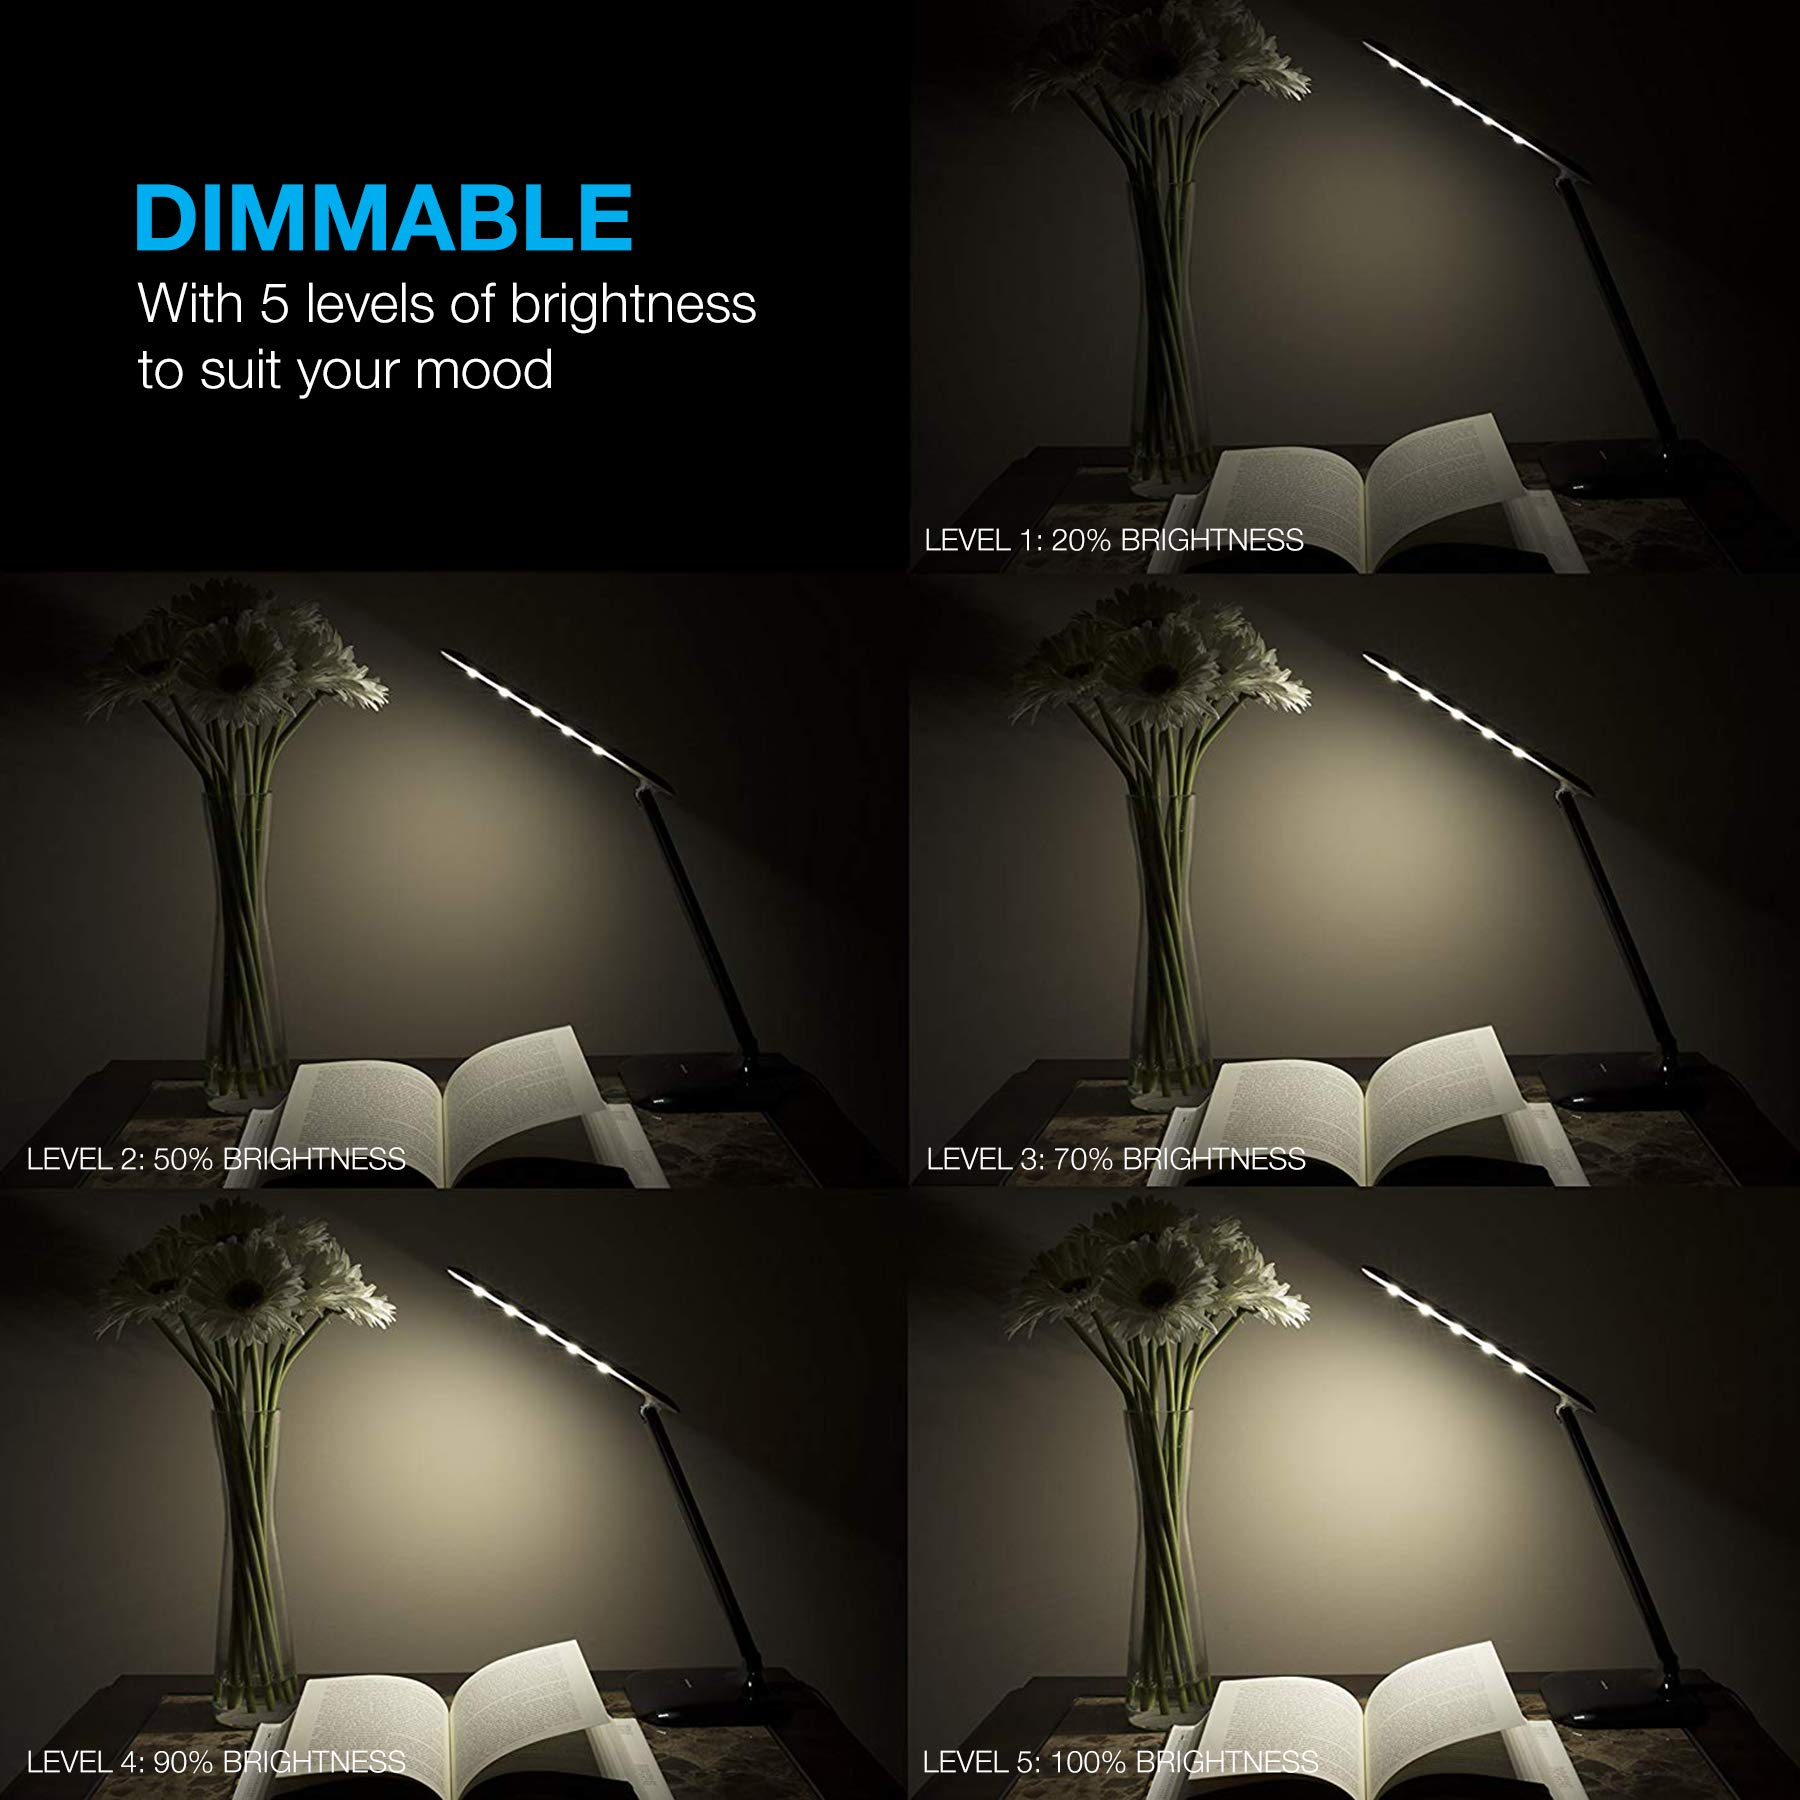 Vont Dimmable LED Desk Lamp - Elegant, Modern and Adjustable - 3 Colors - 5 Brightness Levels - Reading, Studying & Relaxation Modes -Environmentally Friendly - Black by Vont (Image #5)